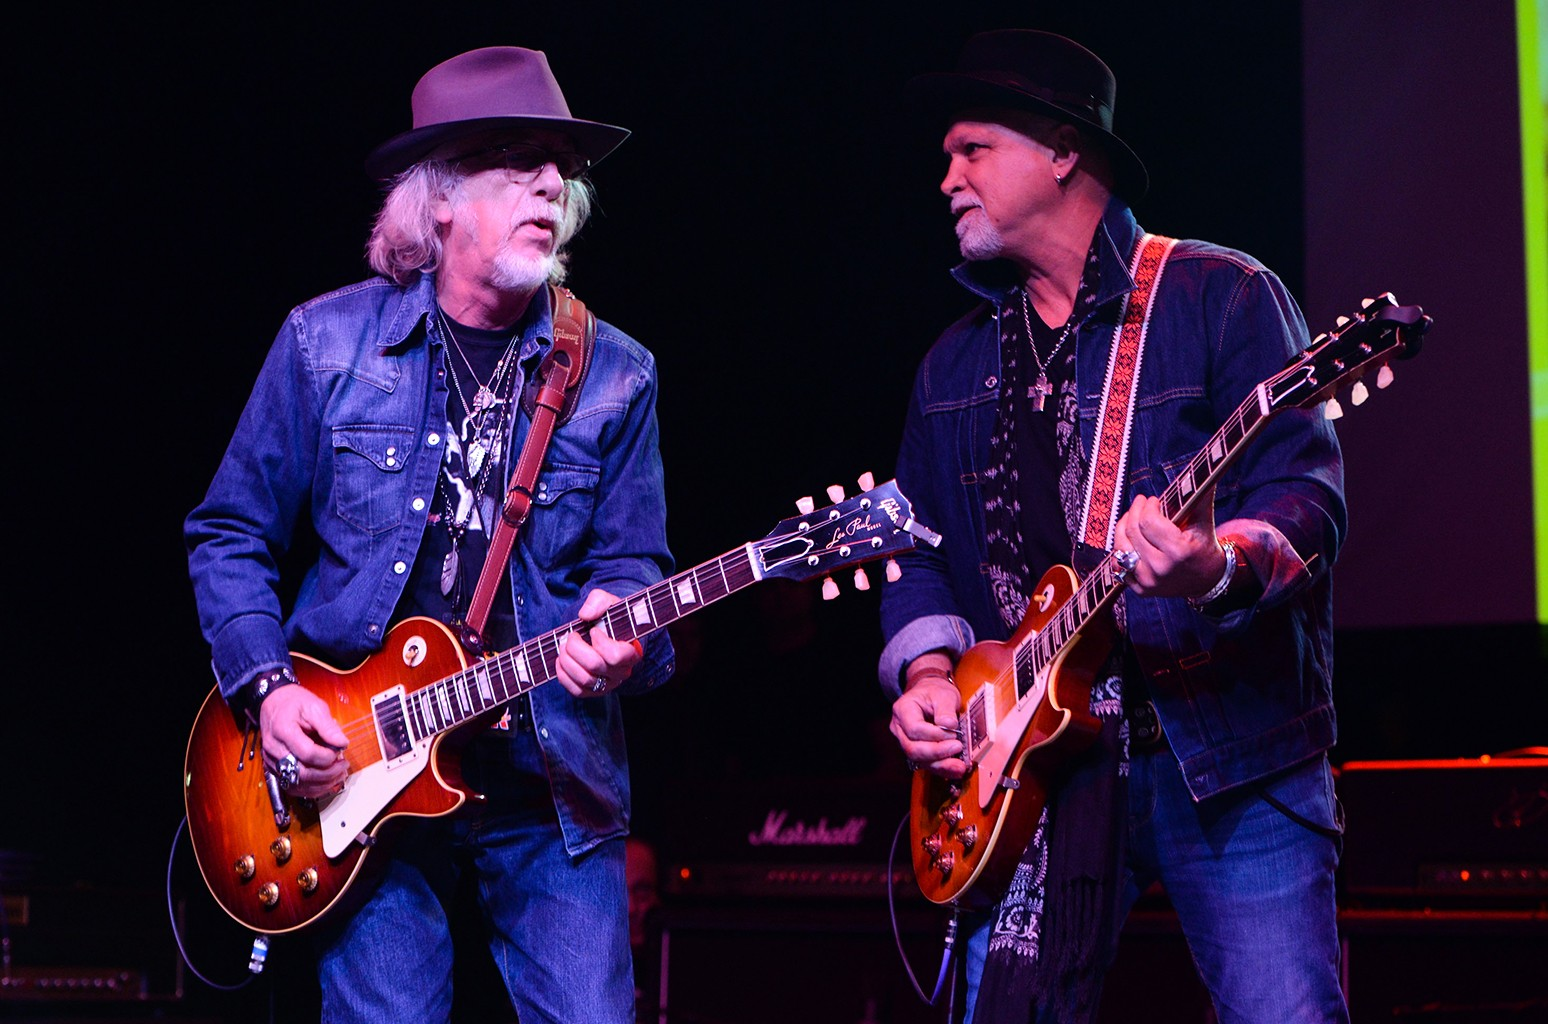 Brad Whitford of Aerosmith and Derek St. Holmes